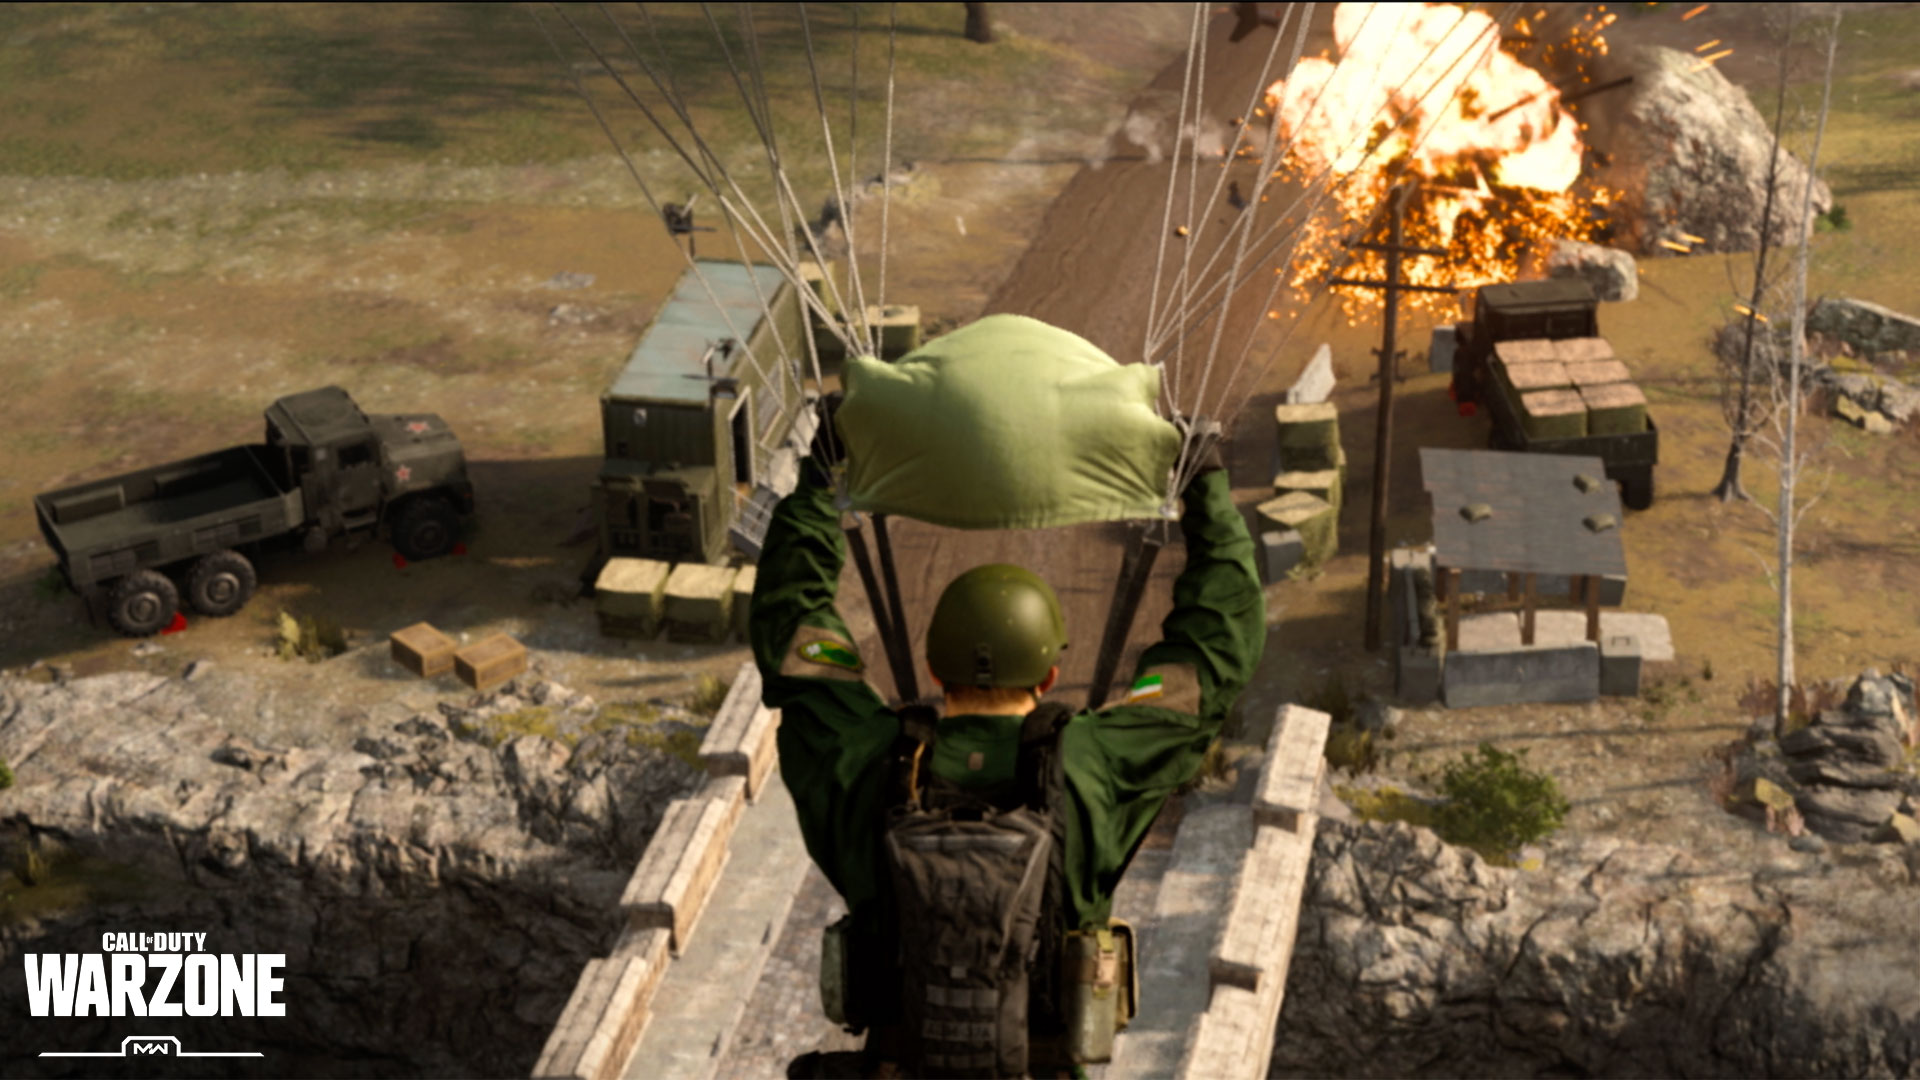 Feeling Lucky in Warzone: 10 Tips to Increase Your Odds - Image 1